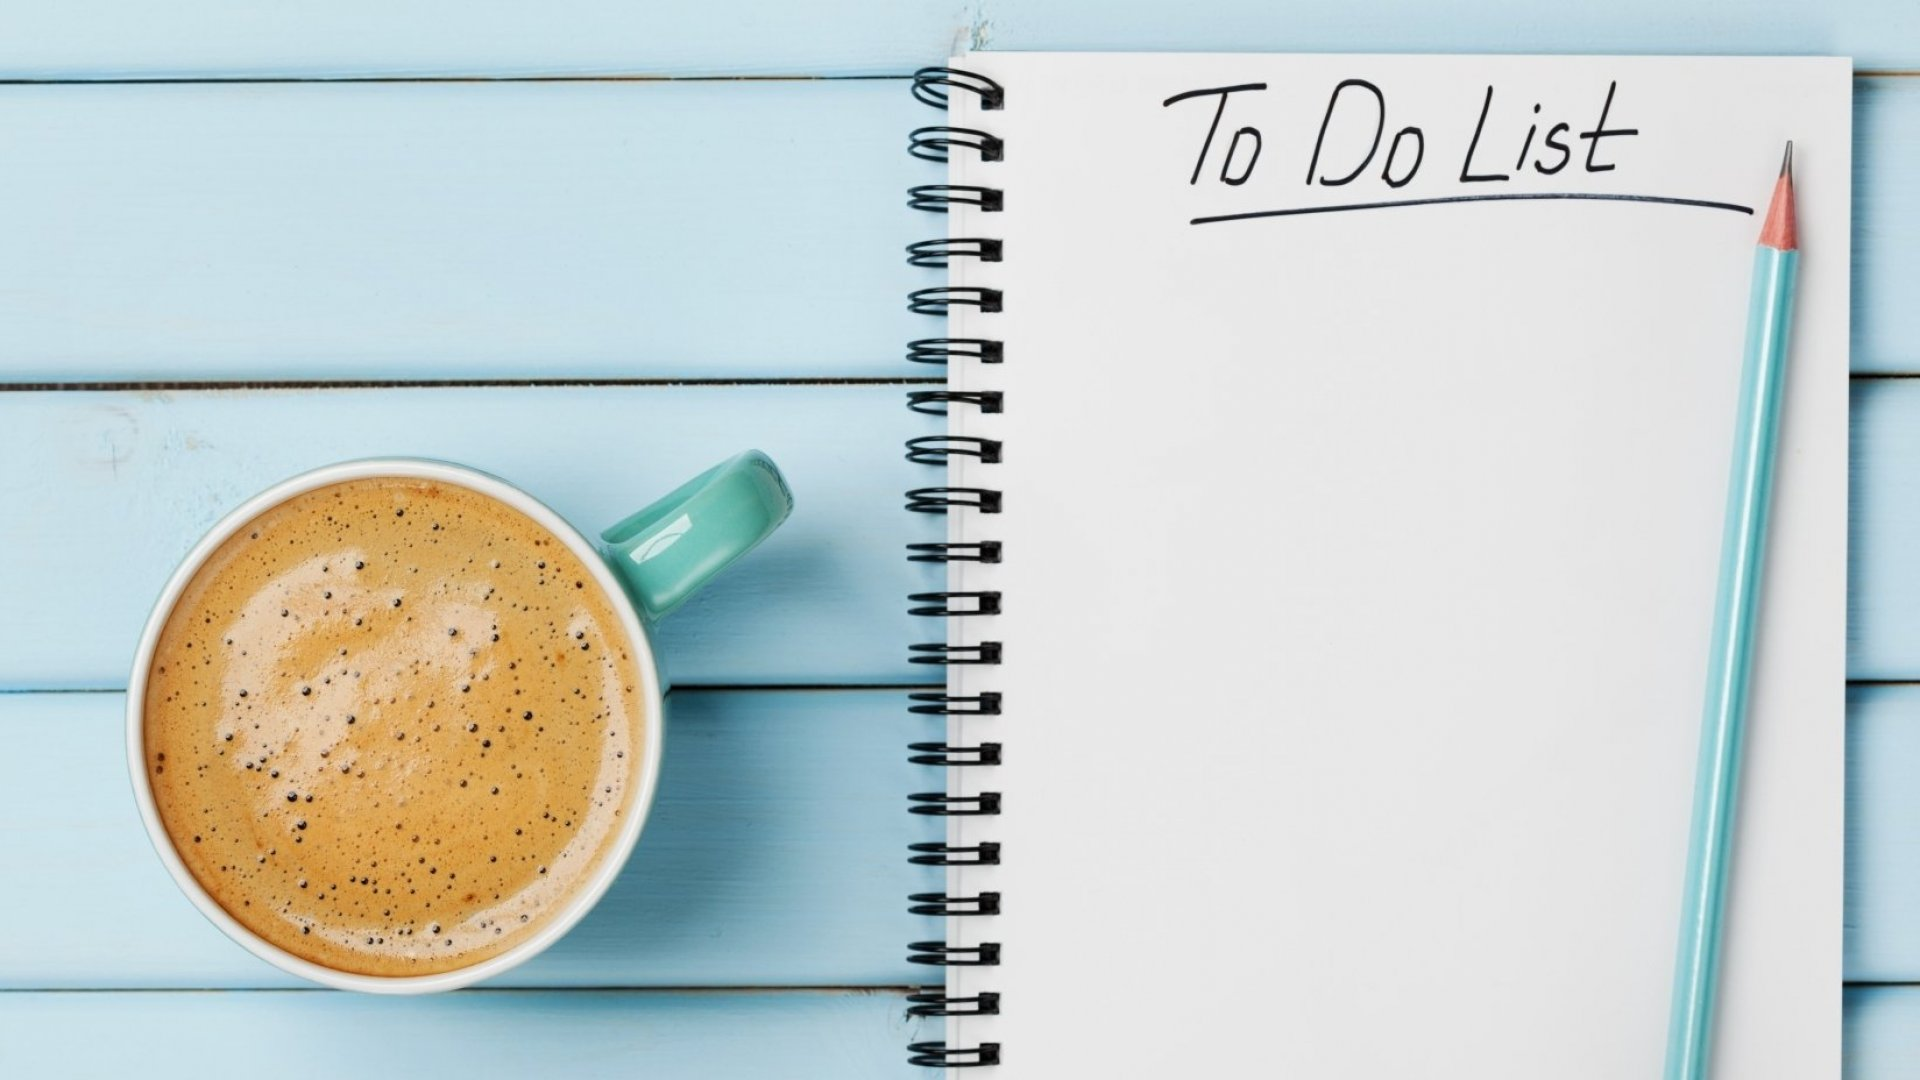 This Productivity Method Is Way Better Than a To-Do List